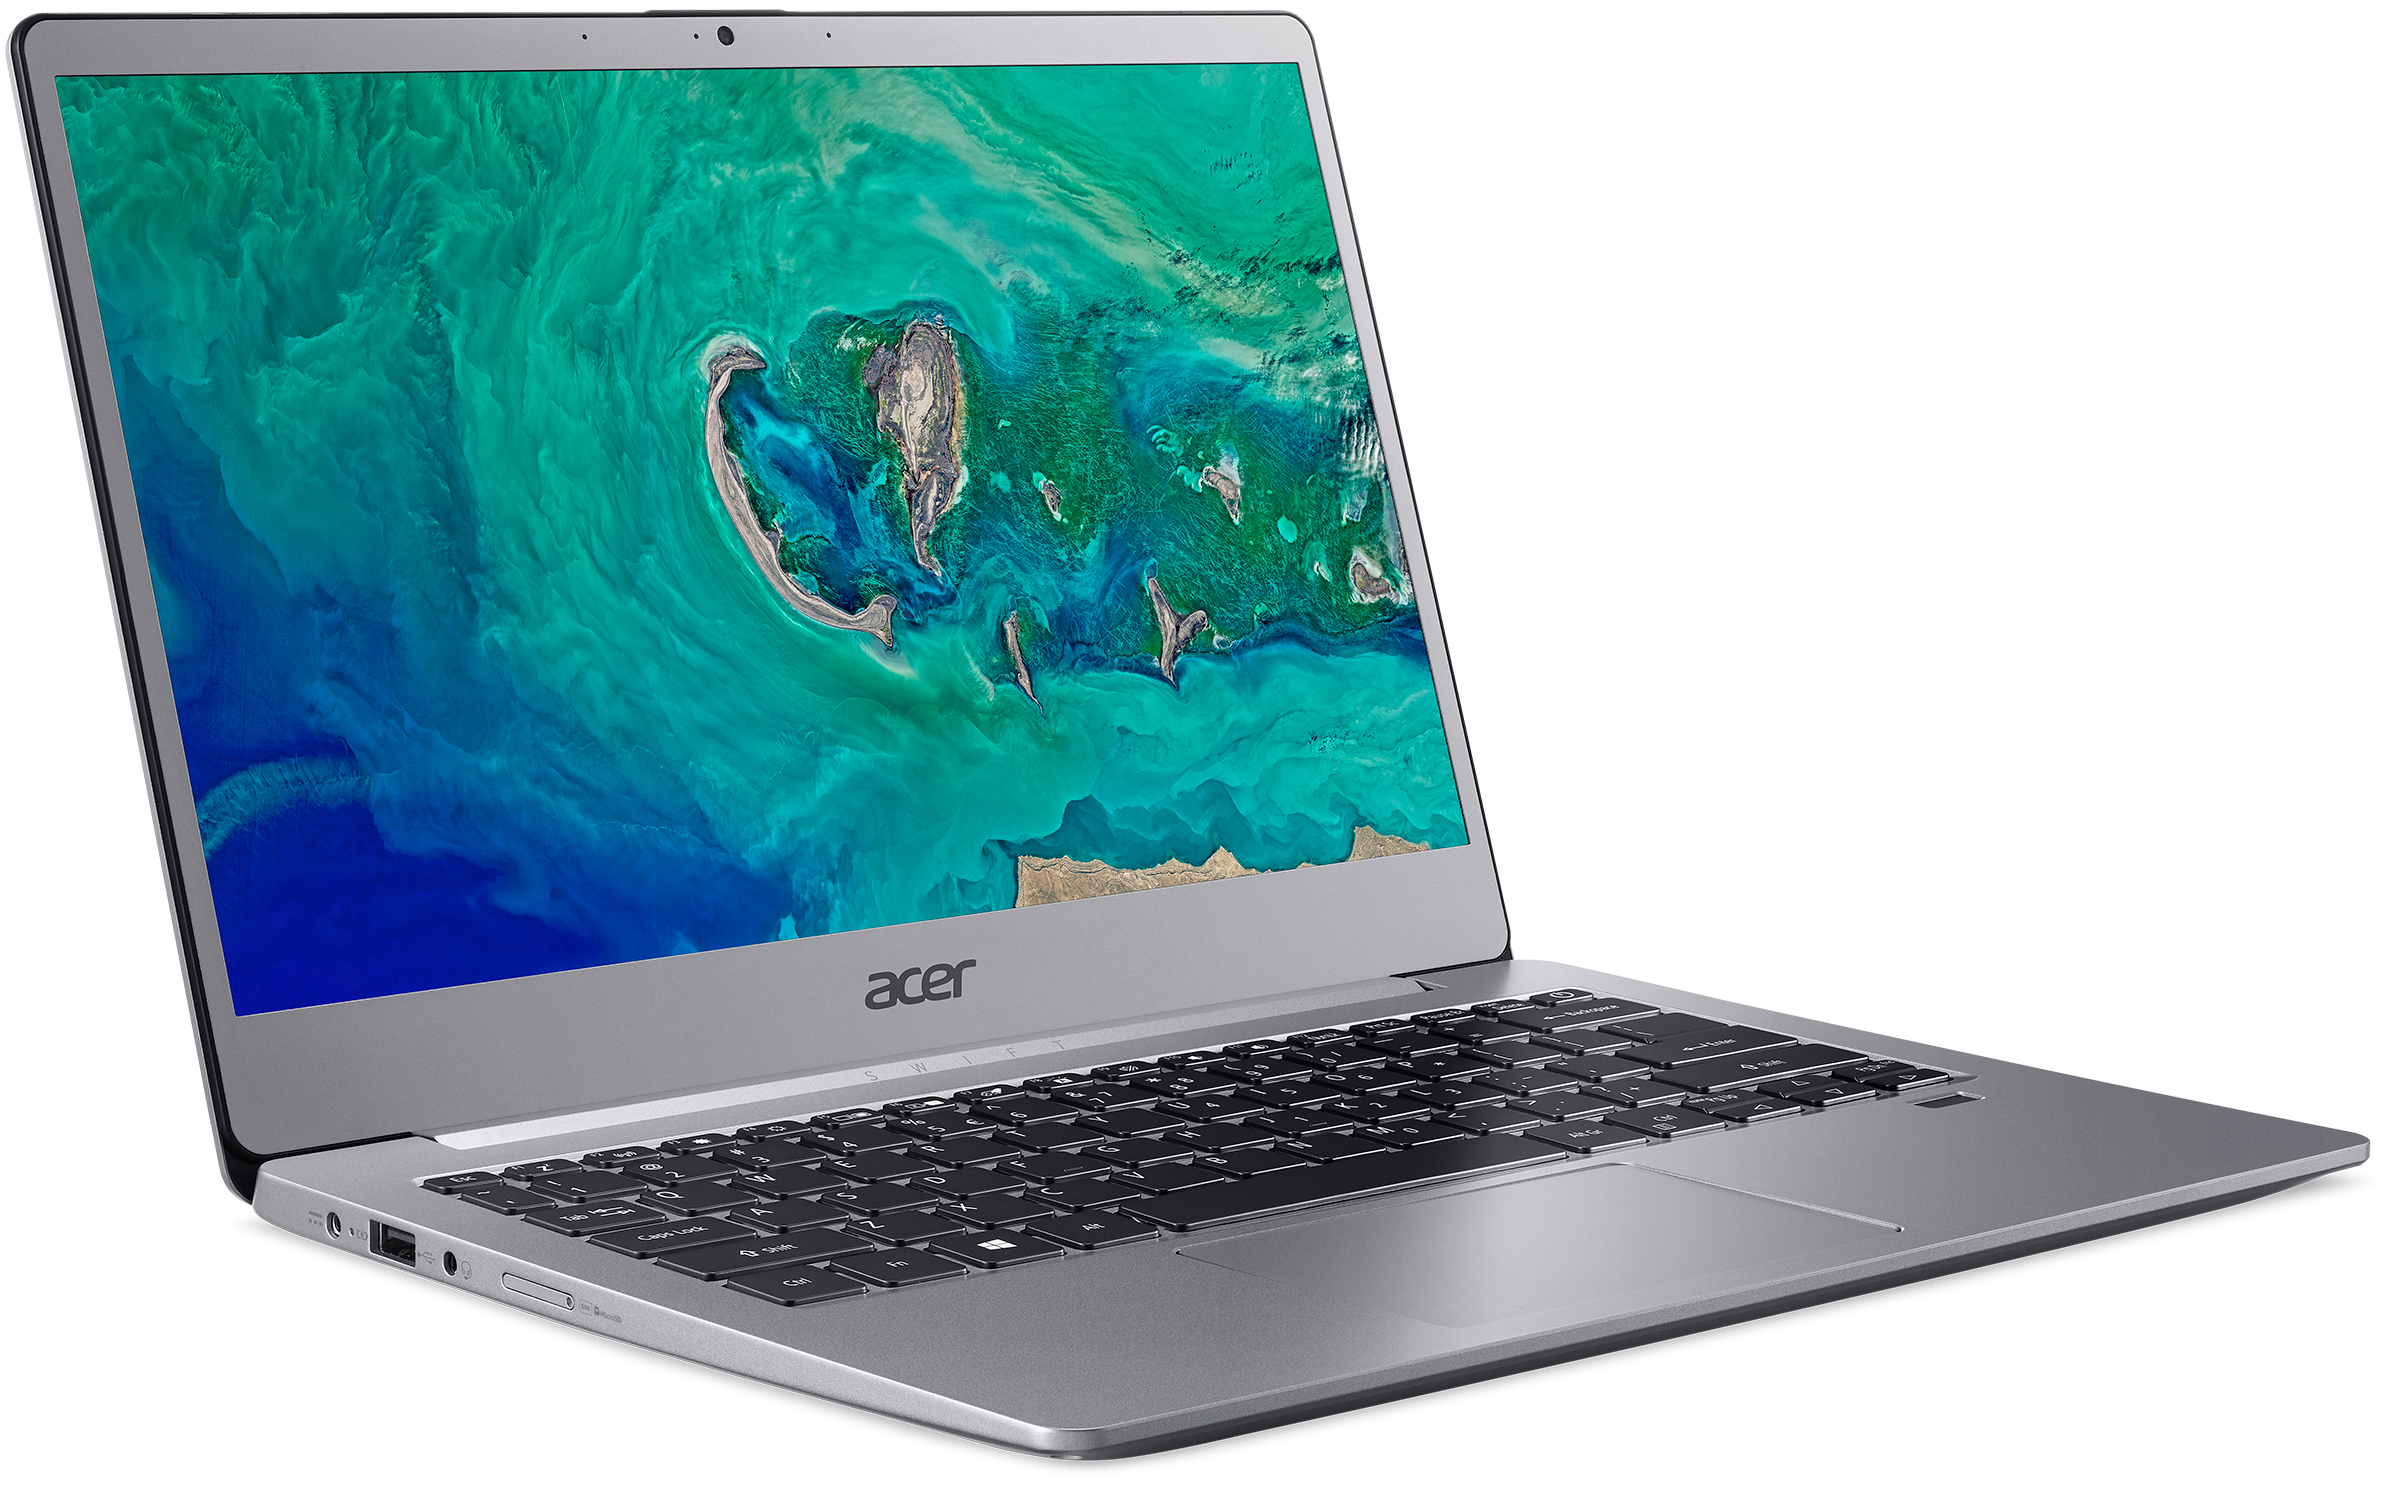 Acer's Swift 3 Laptop Gets 13 3-Inch Display, Slimmer Chassis, LTE Modem